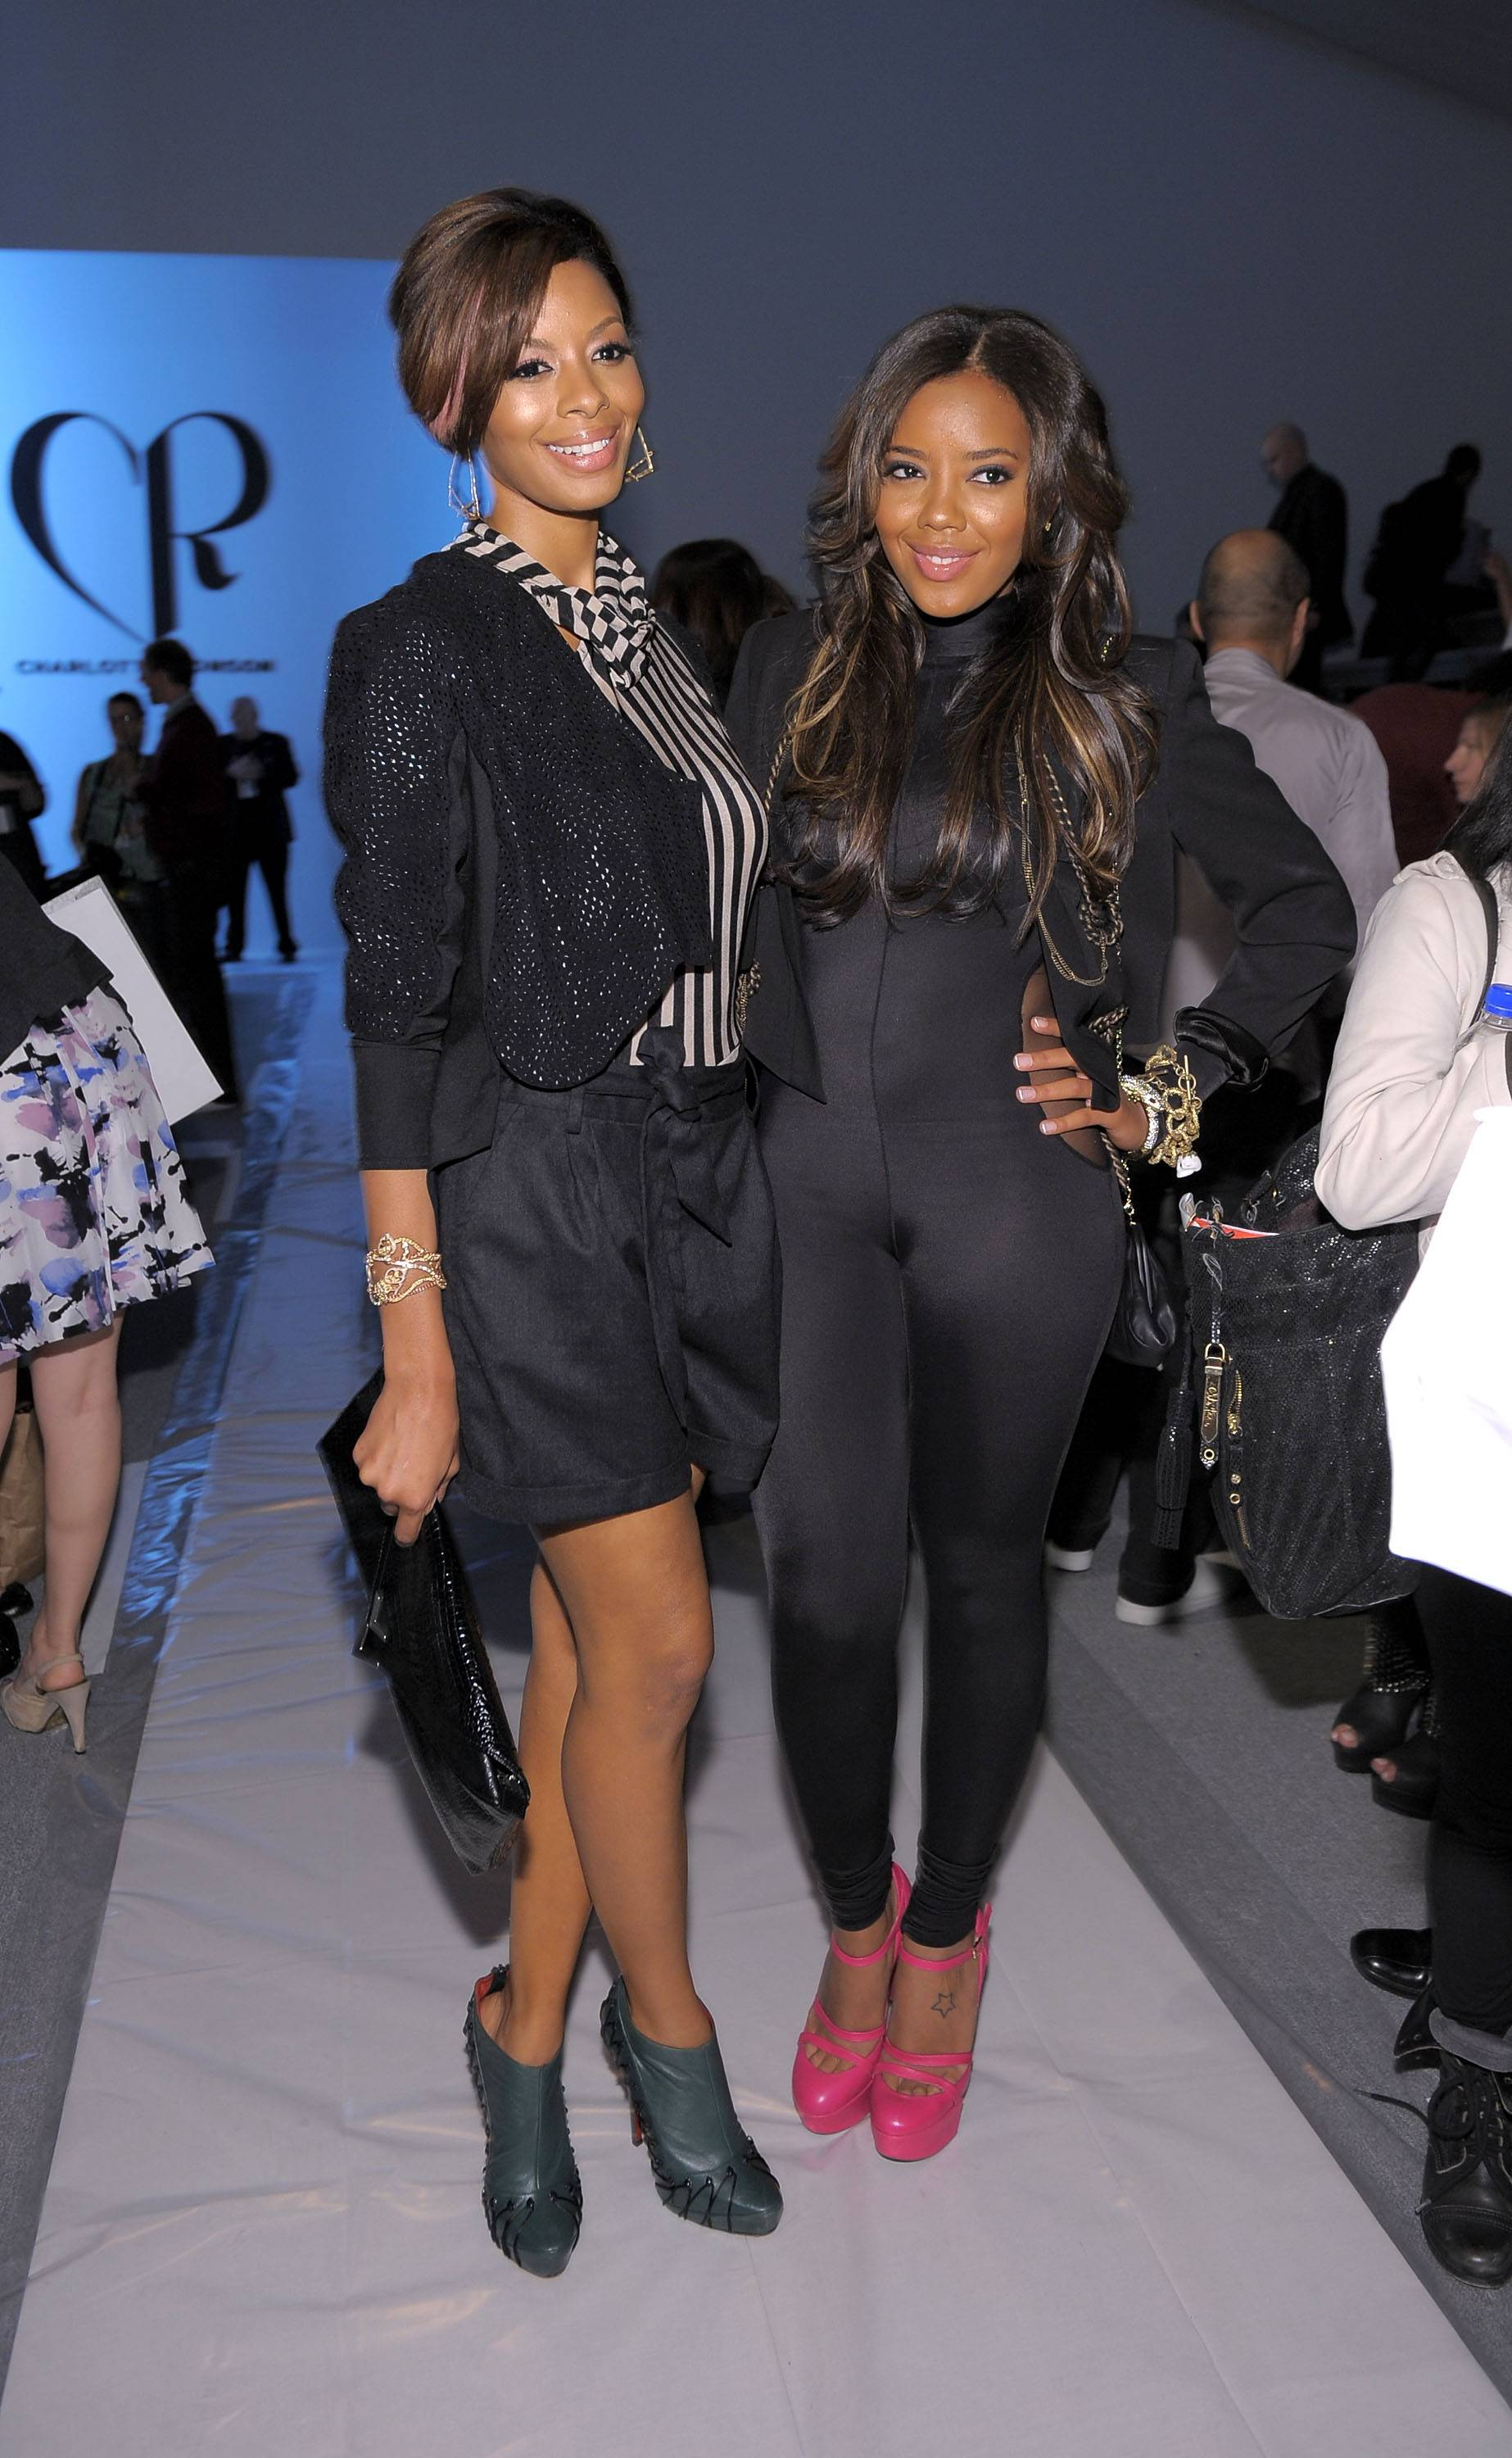 Vanessa andAngela Simmons - A sister?s bond is like no other and these two are always stuck together like glue. Angela and Vanessa are building their brand and a life as best friends.  (Photo: Michael Loccisano/Getty Images for IMG)